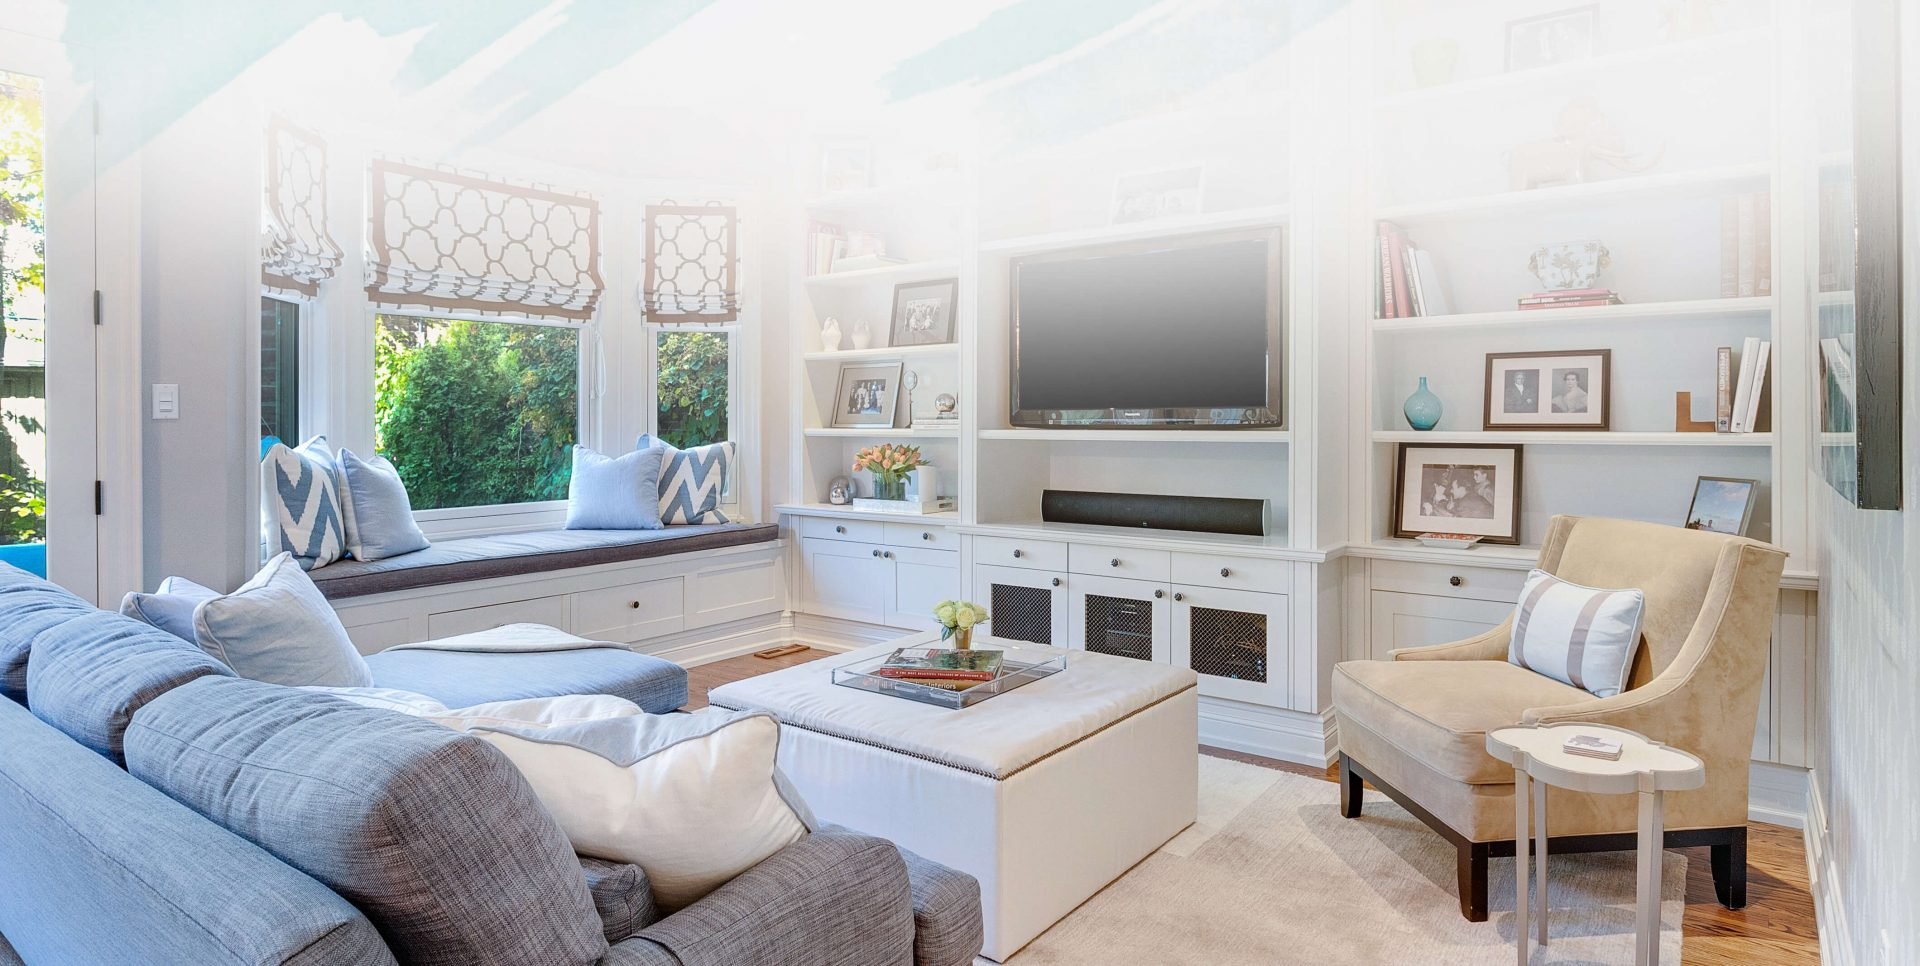 4 Ways To Make Your Home An Oasis Of Calm